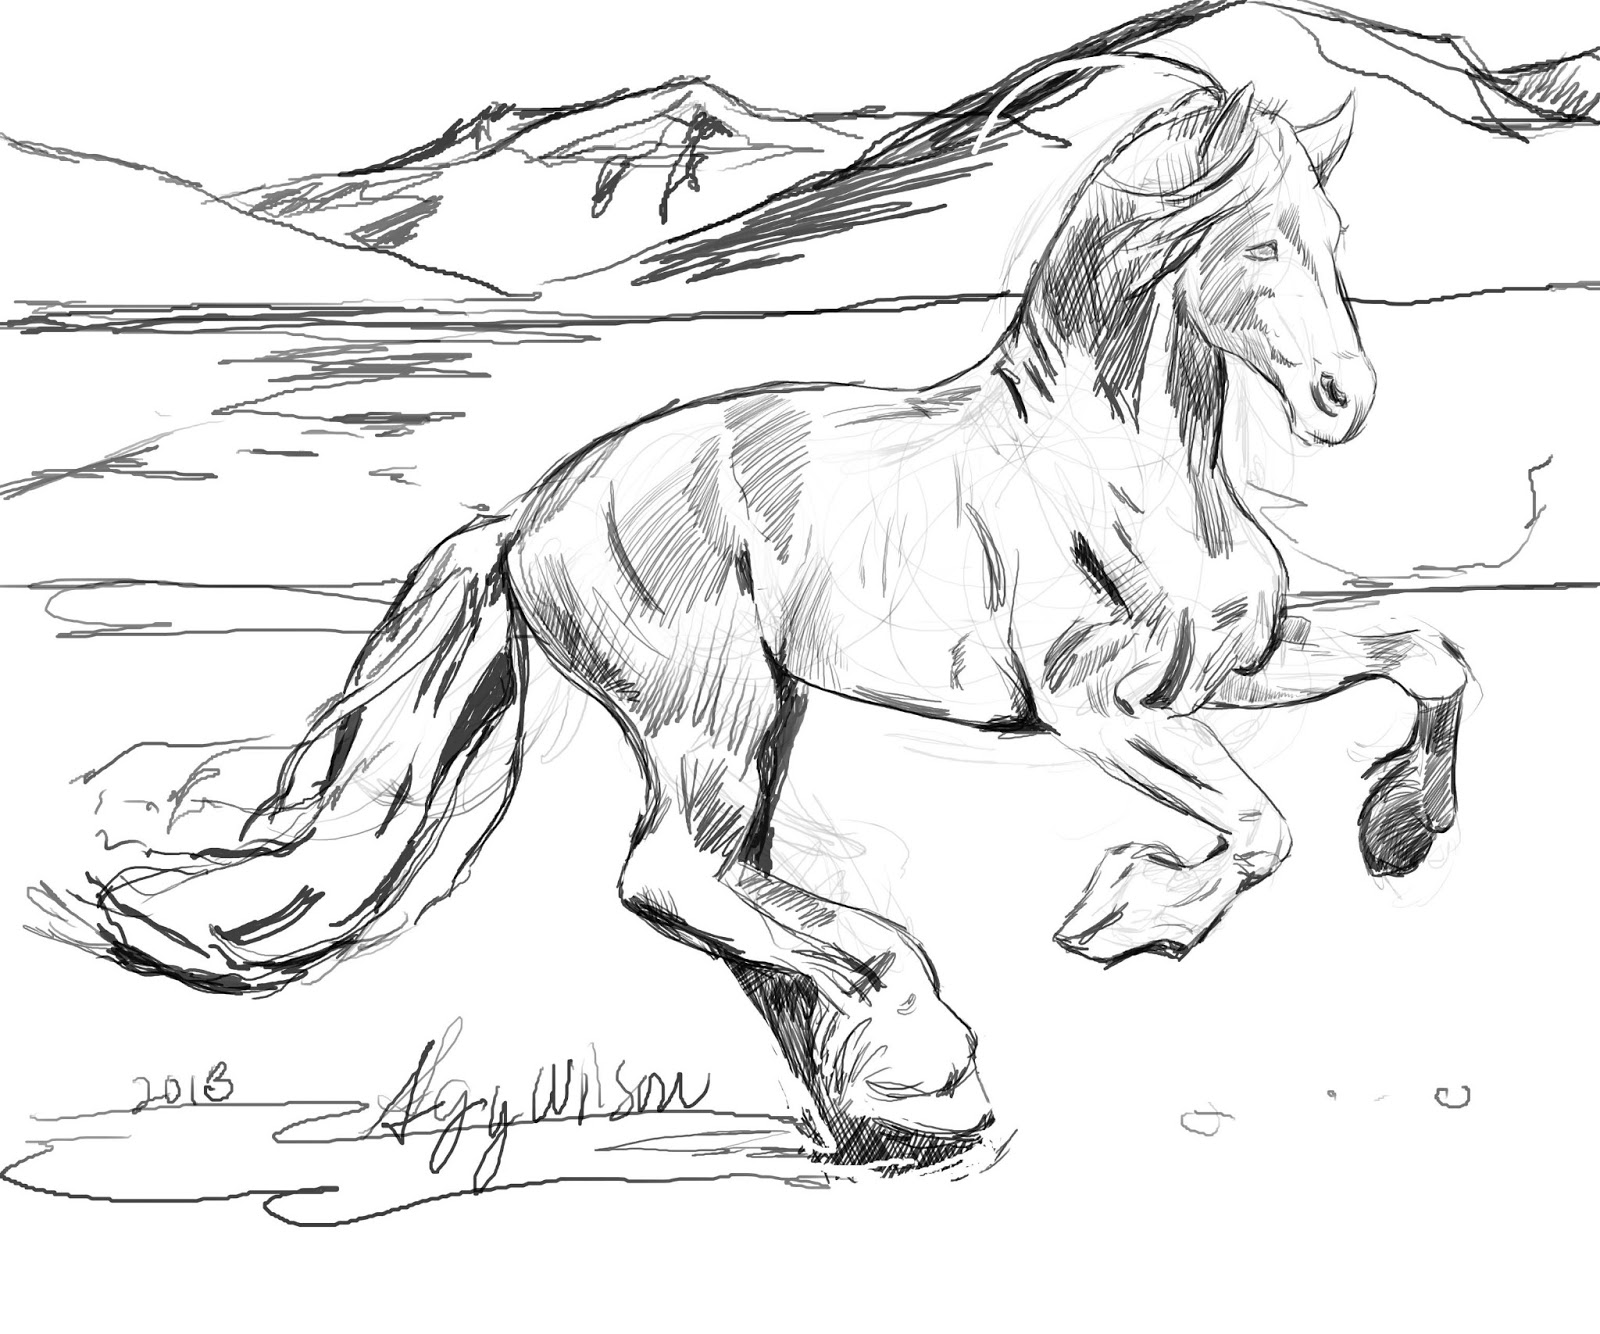 coloring book pages of horses | AGY WILSON'S ART: July 2013